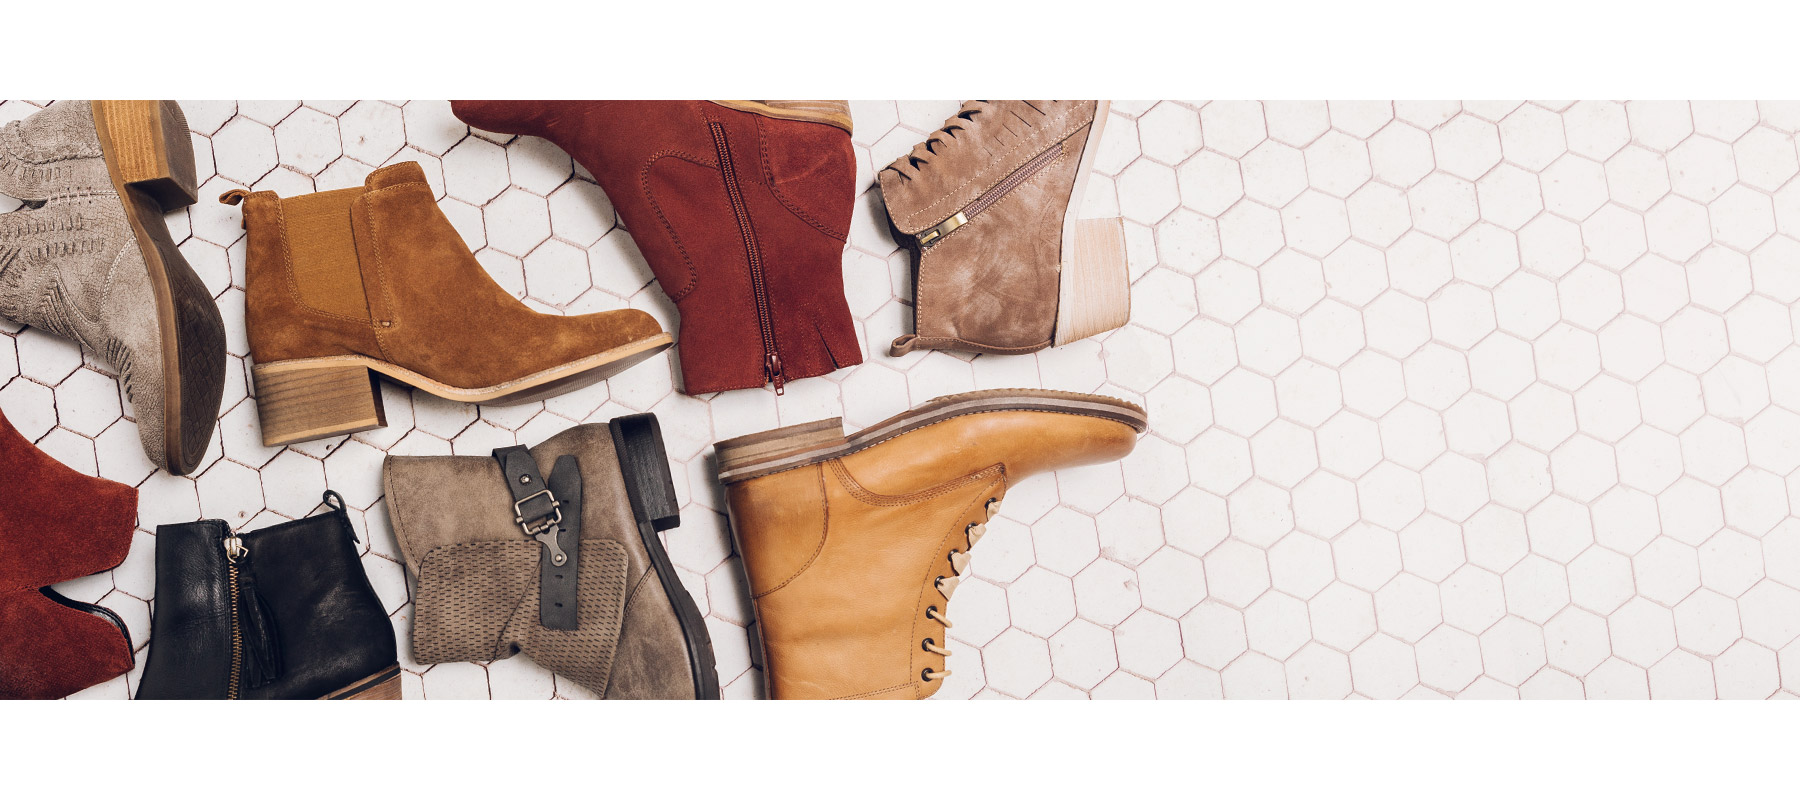 Assorted new styles of women's boots from Buckle's fall collection, laying on tiled floor.